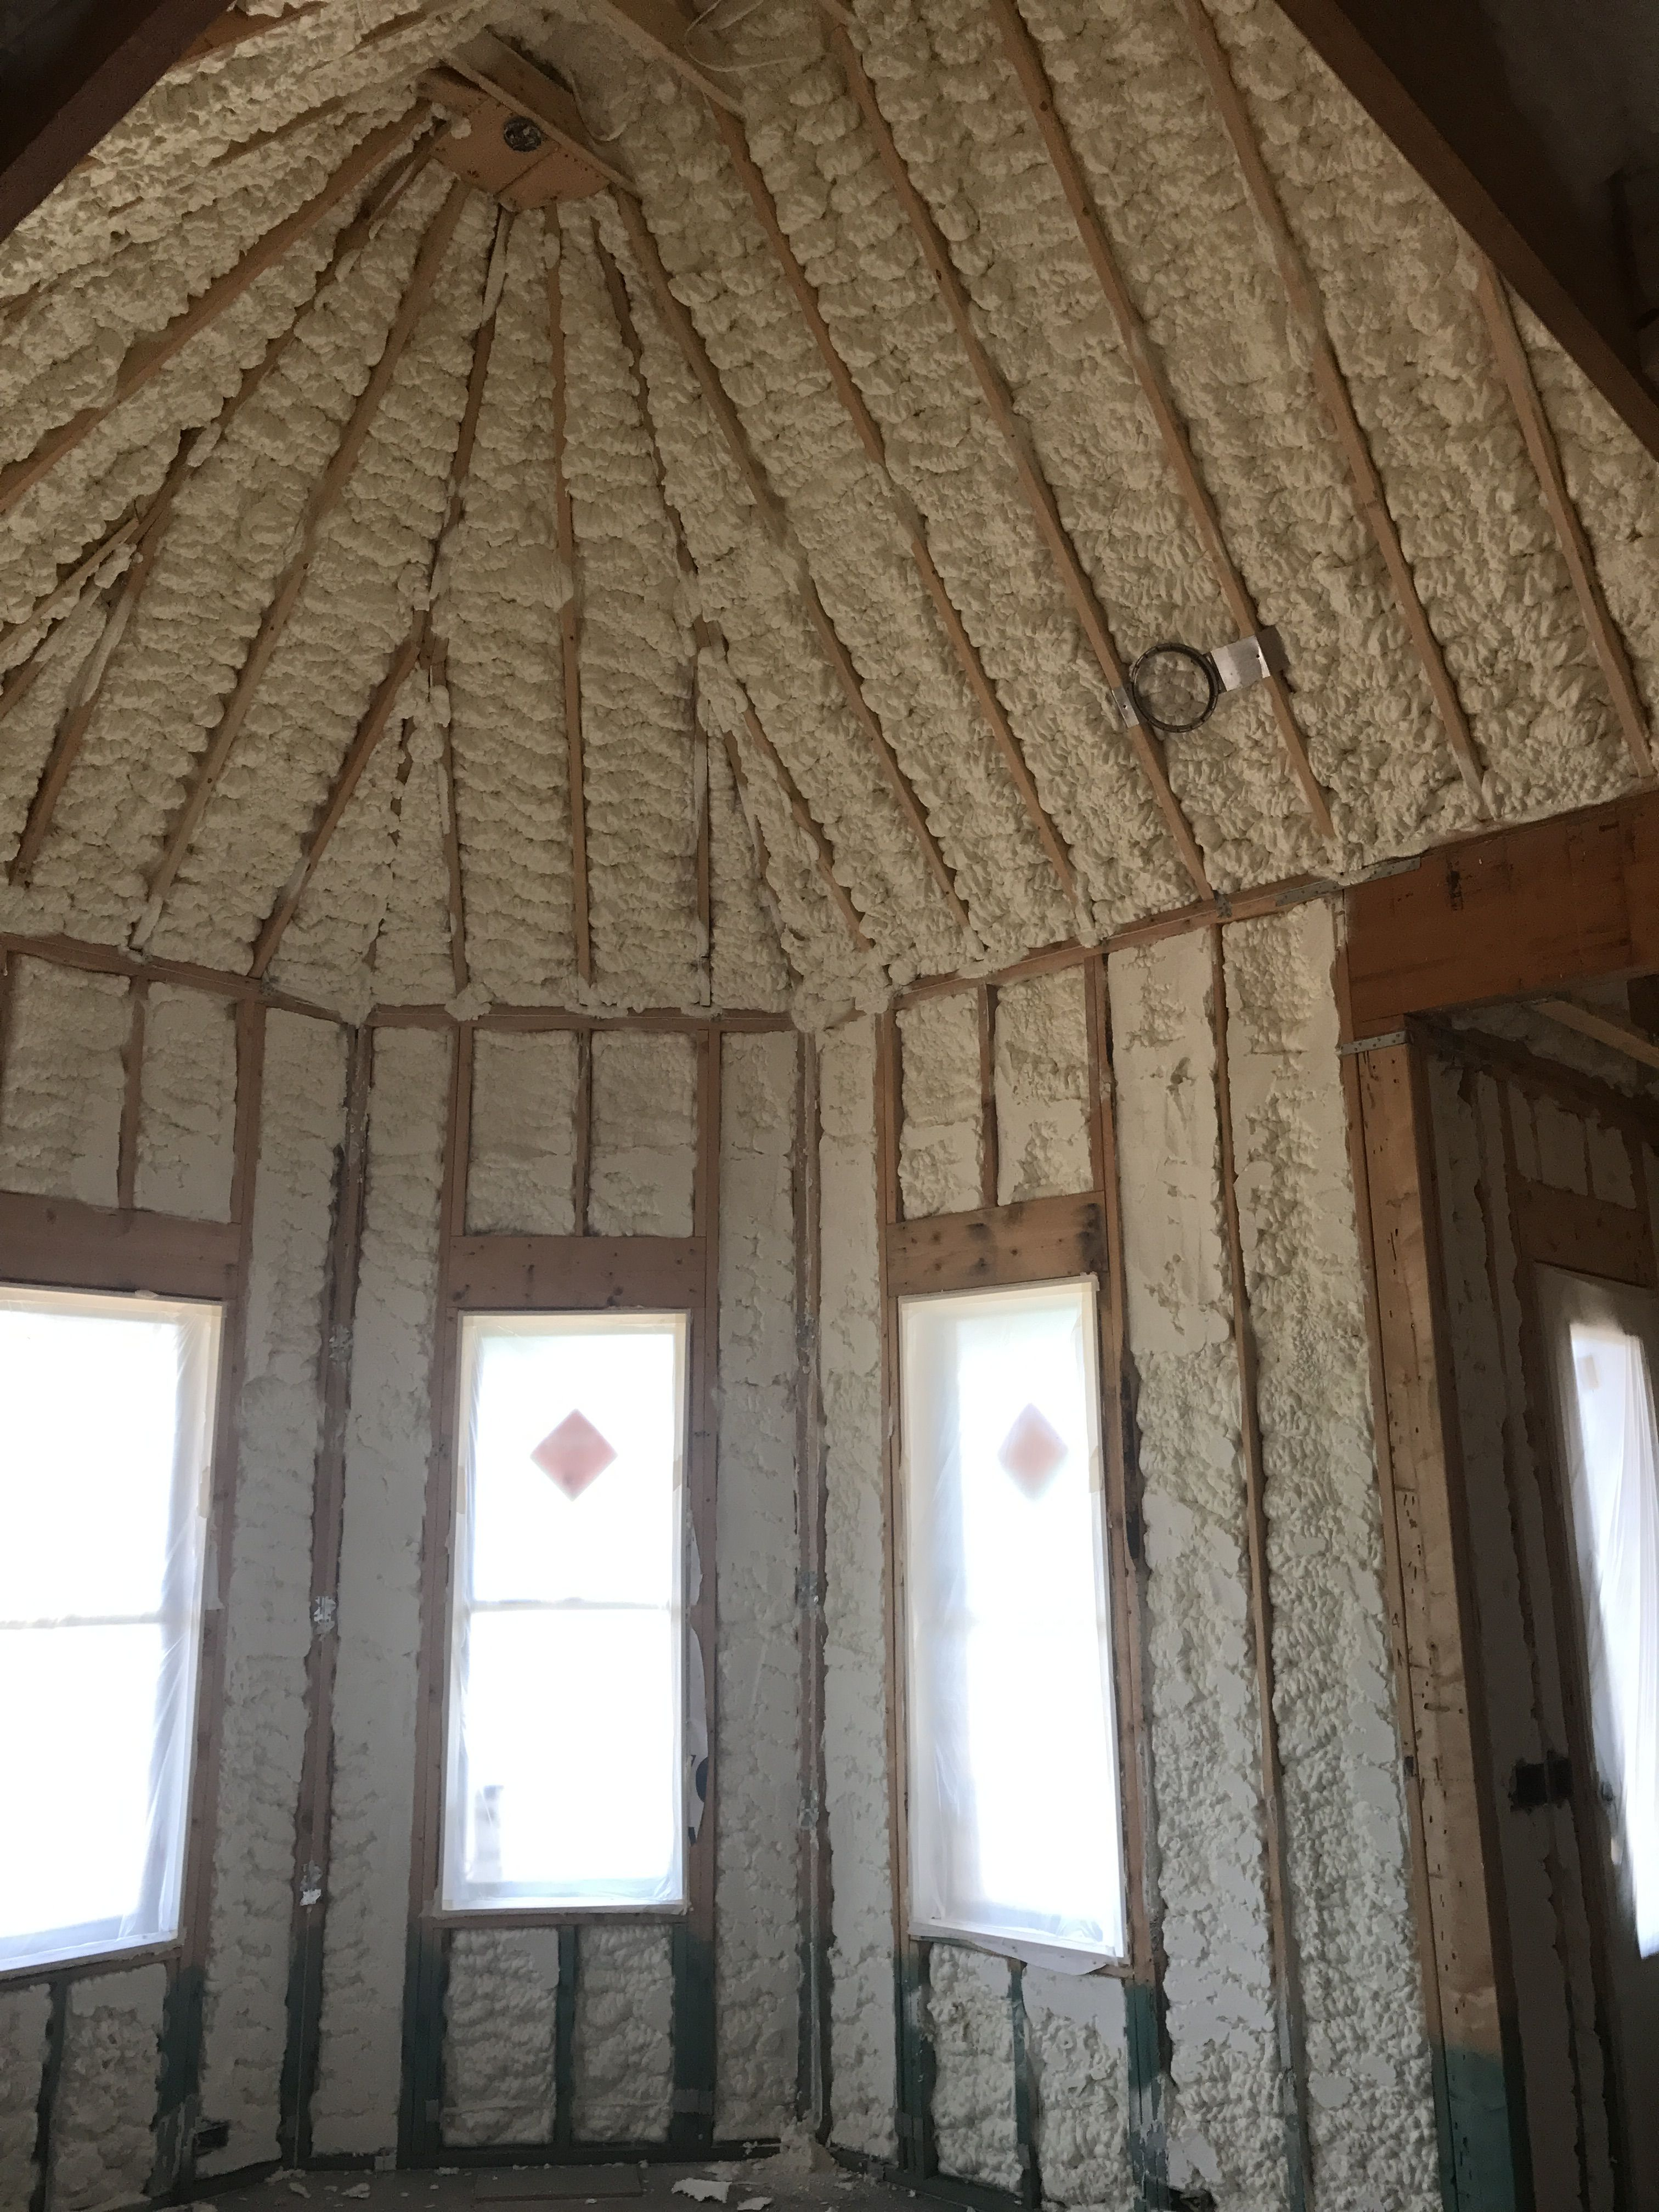 Spray Foam Insulation Used On Roof Deck And Exterior Walls Looks